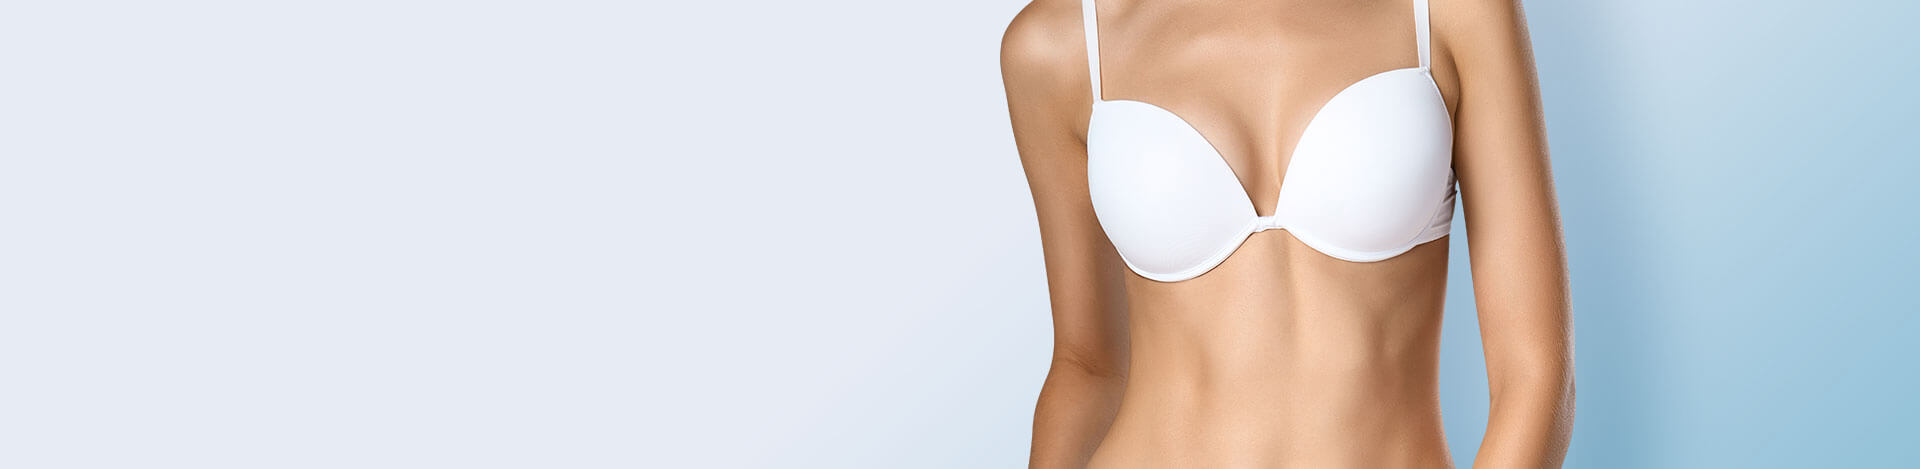 woman flawless breast implant result